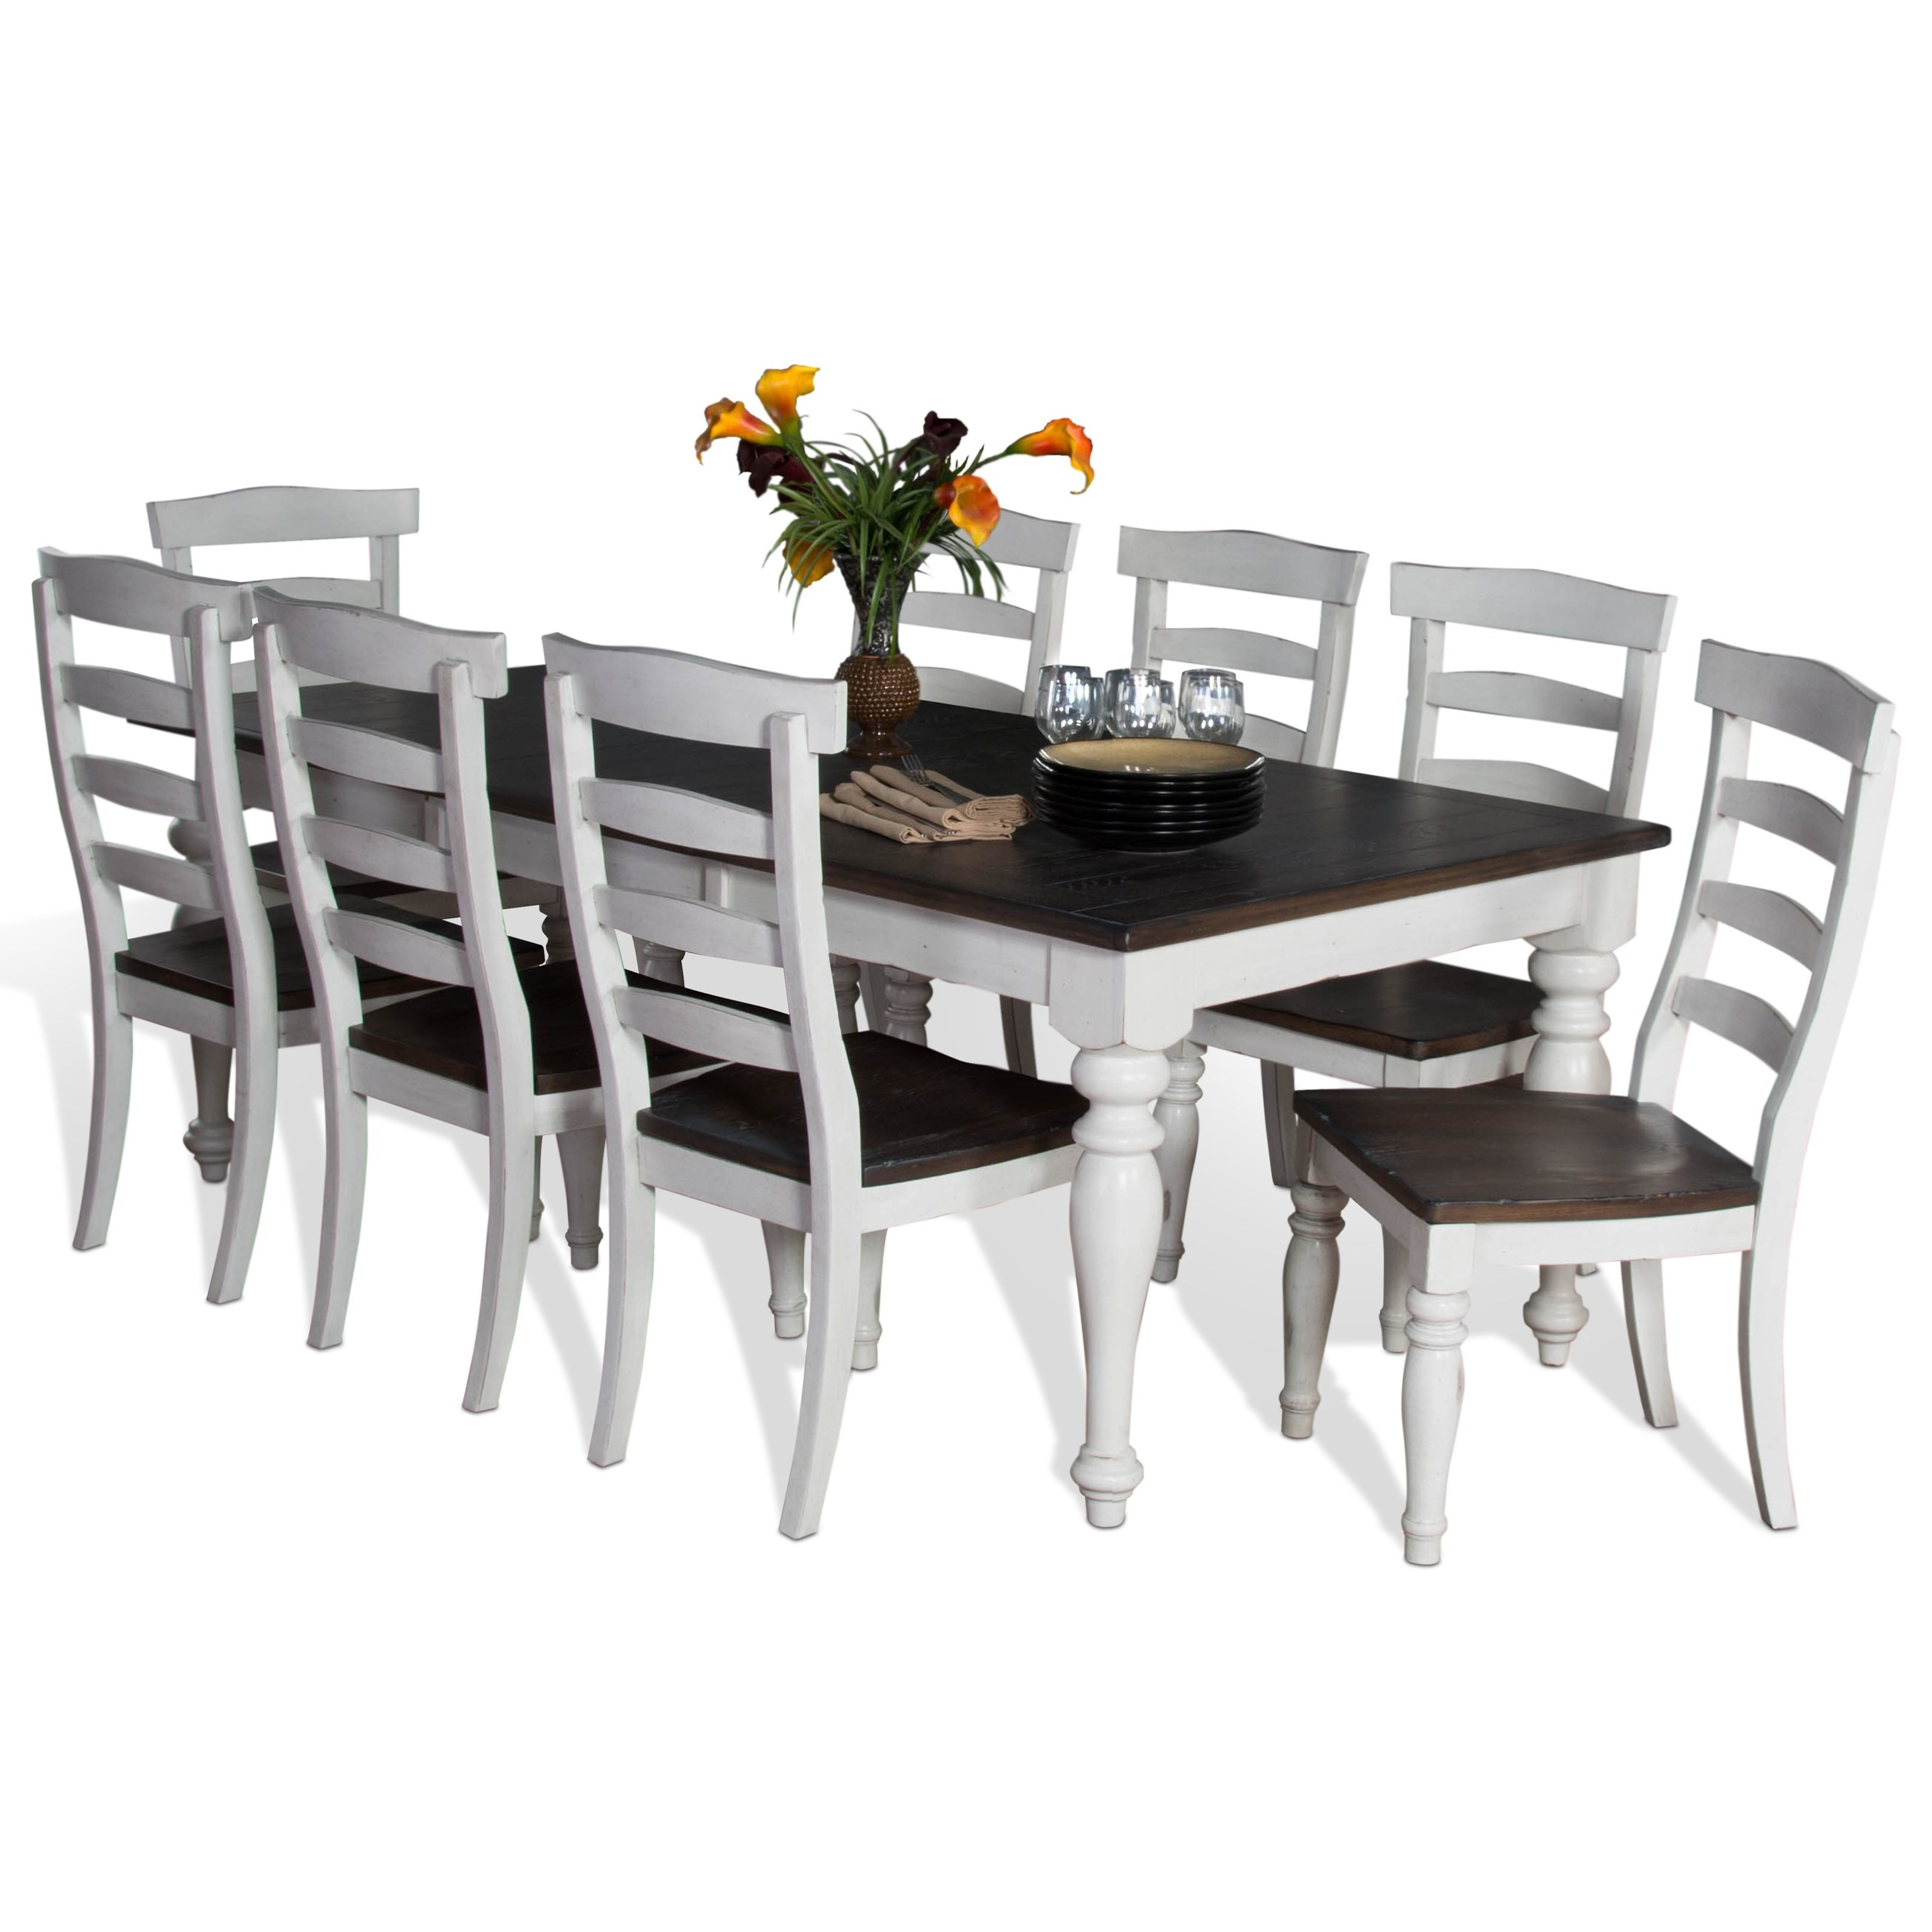 9 Piece Extension Dining Table Set With Ladderback Chairs